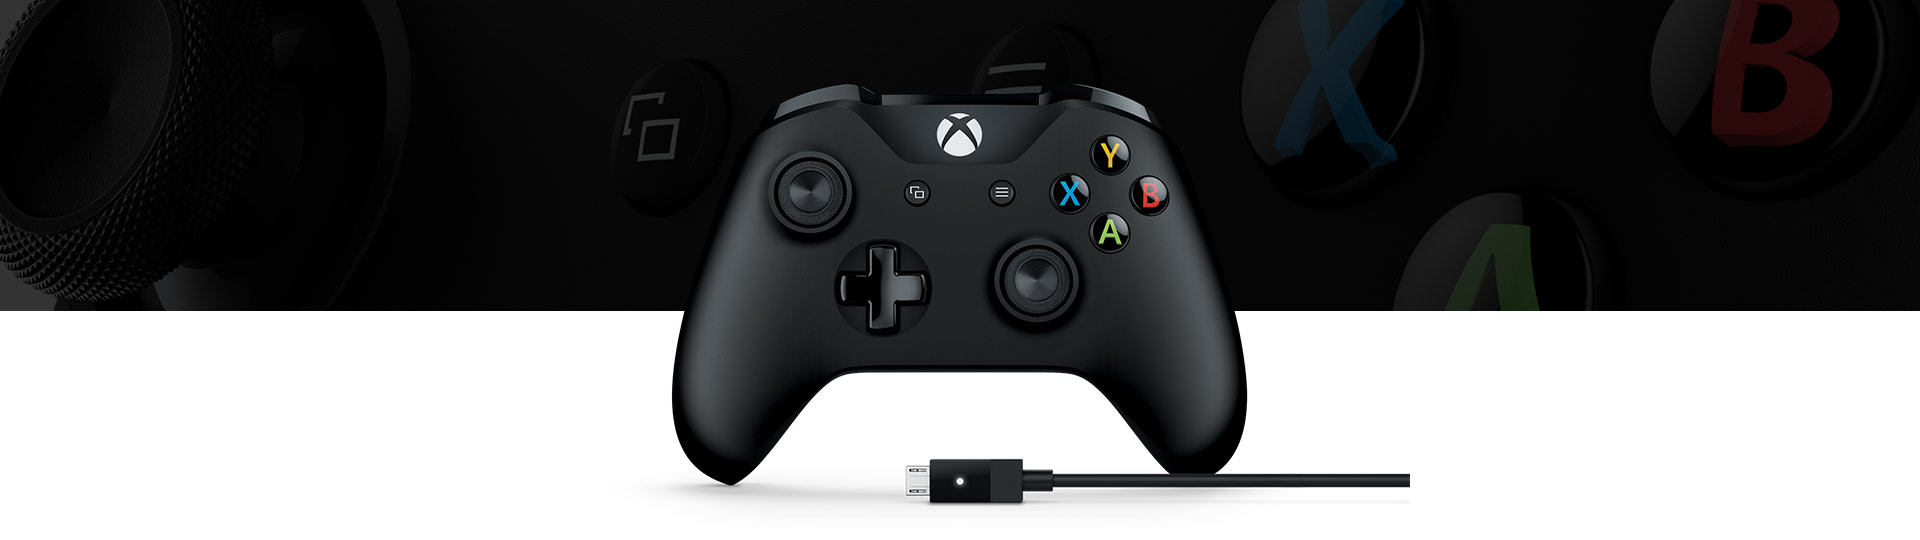 Xbox-controller plus kabel voor Windows